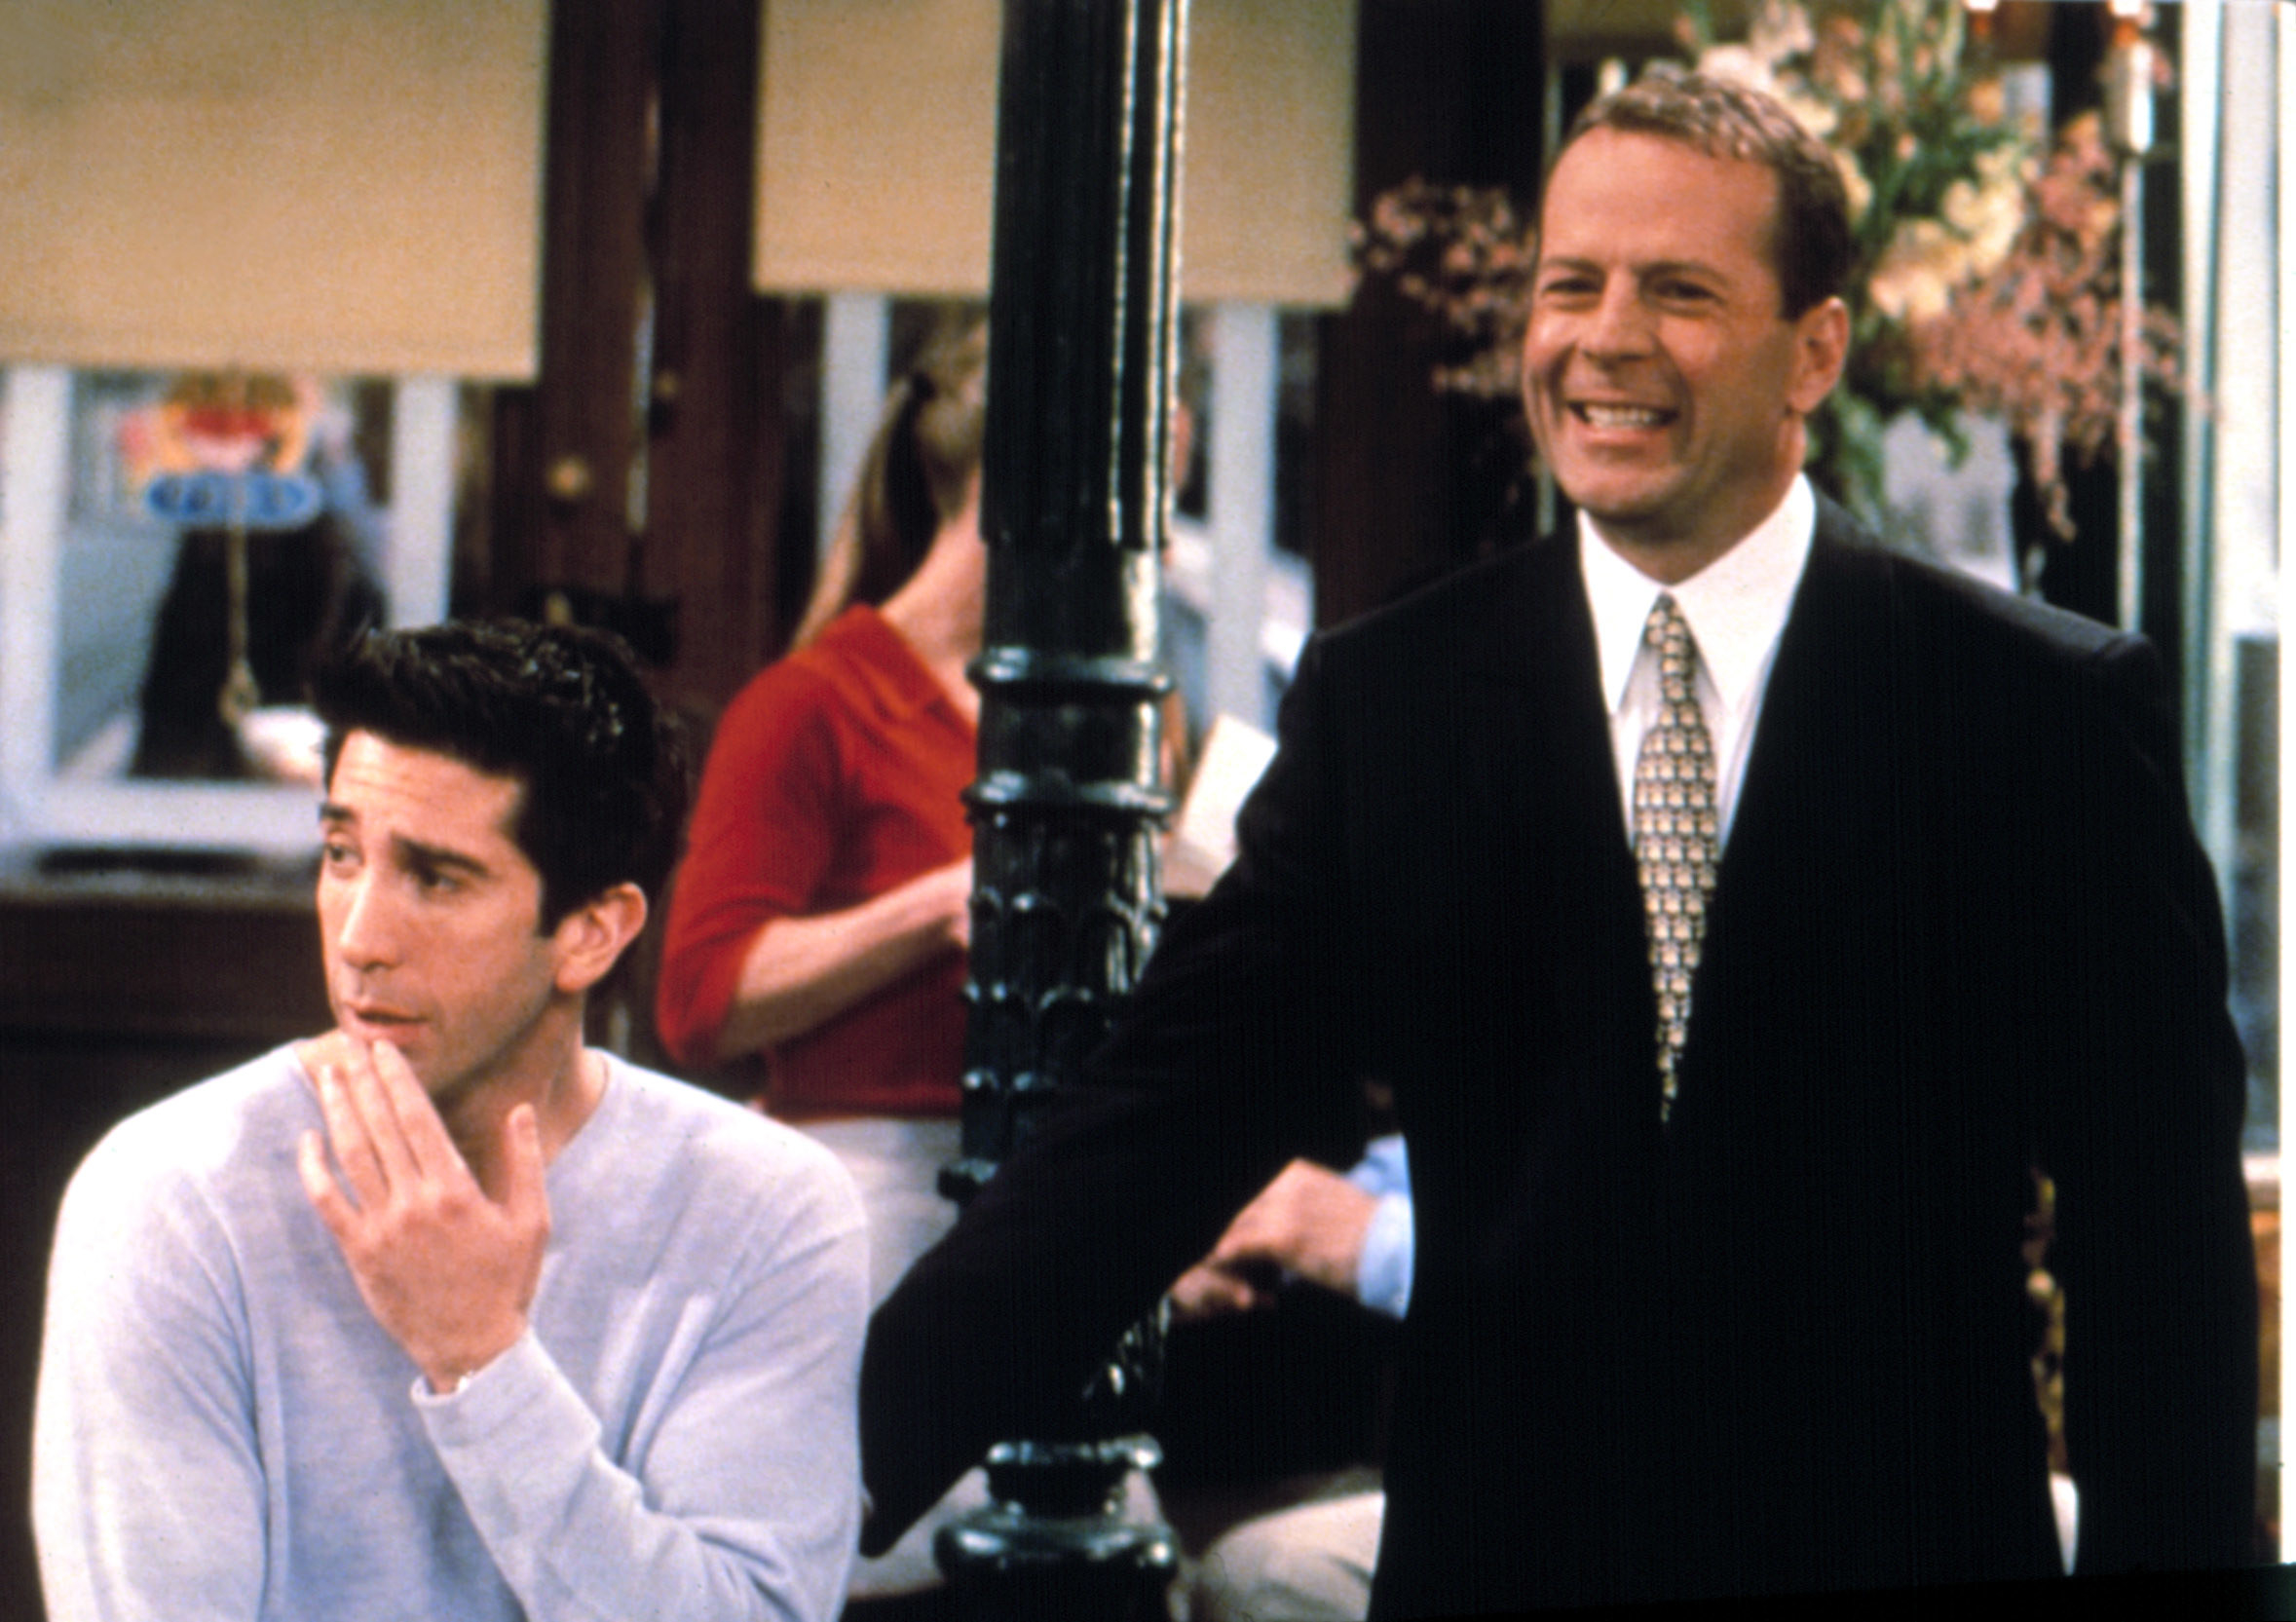 Bruce Willis with Ross in Central Perk in Friends